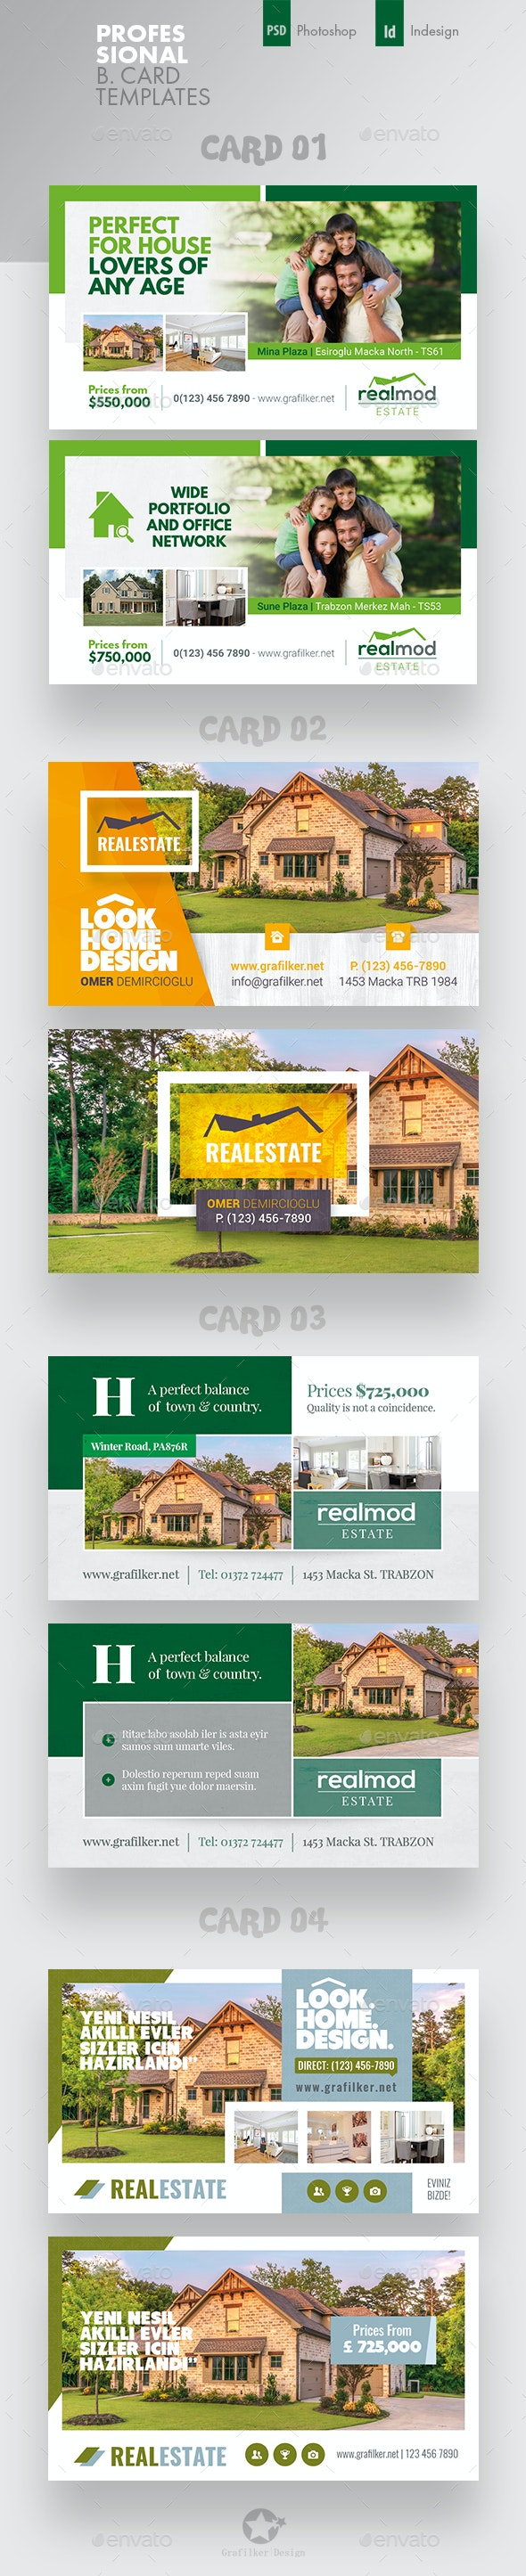 Real Estate Business Card Bundle Templates - Corporate Business Cards